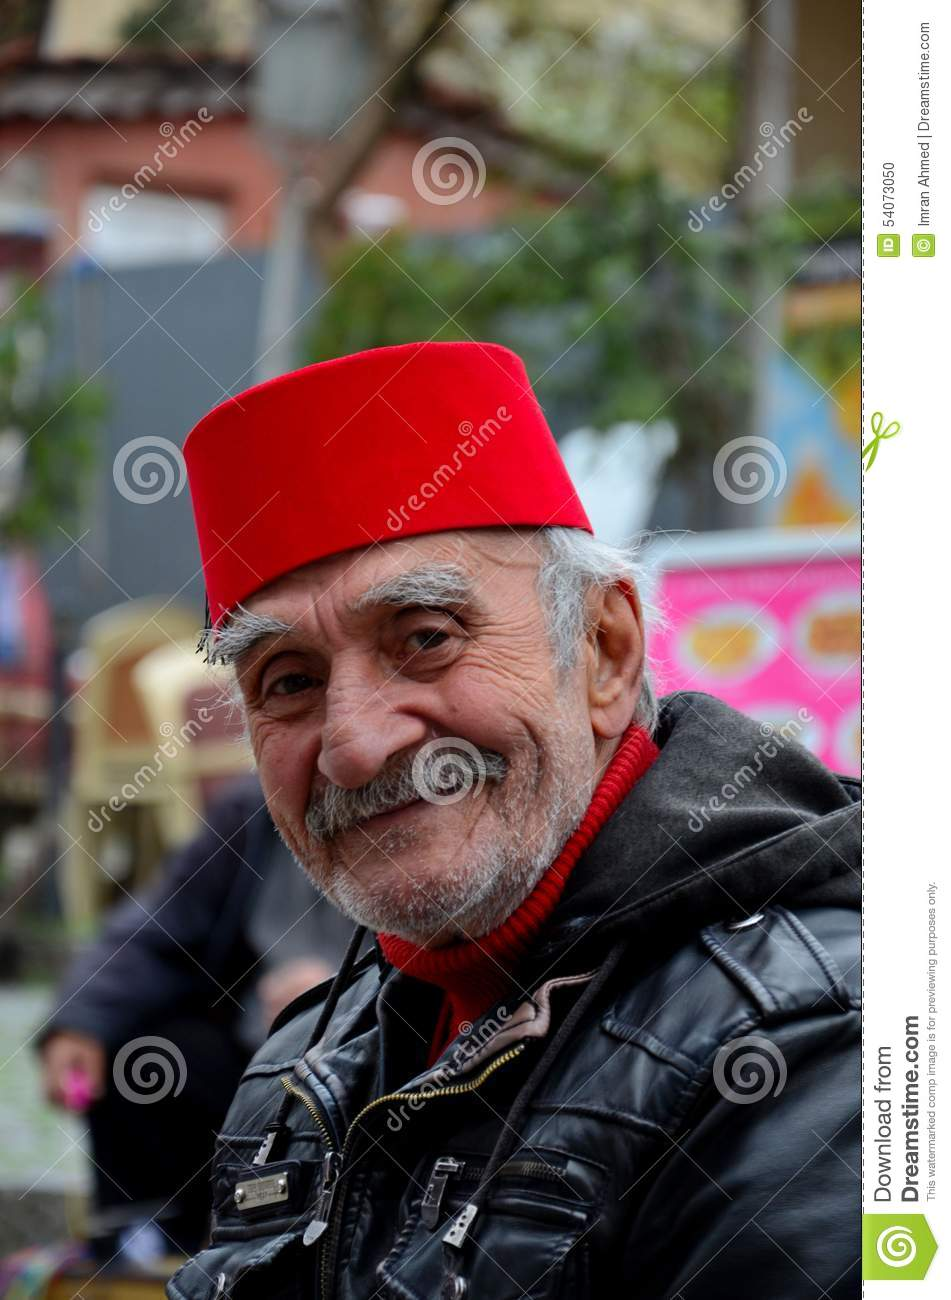 Smiling Happy Old Turkish Man In Fez And Leather Jacket